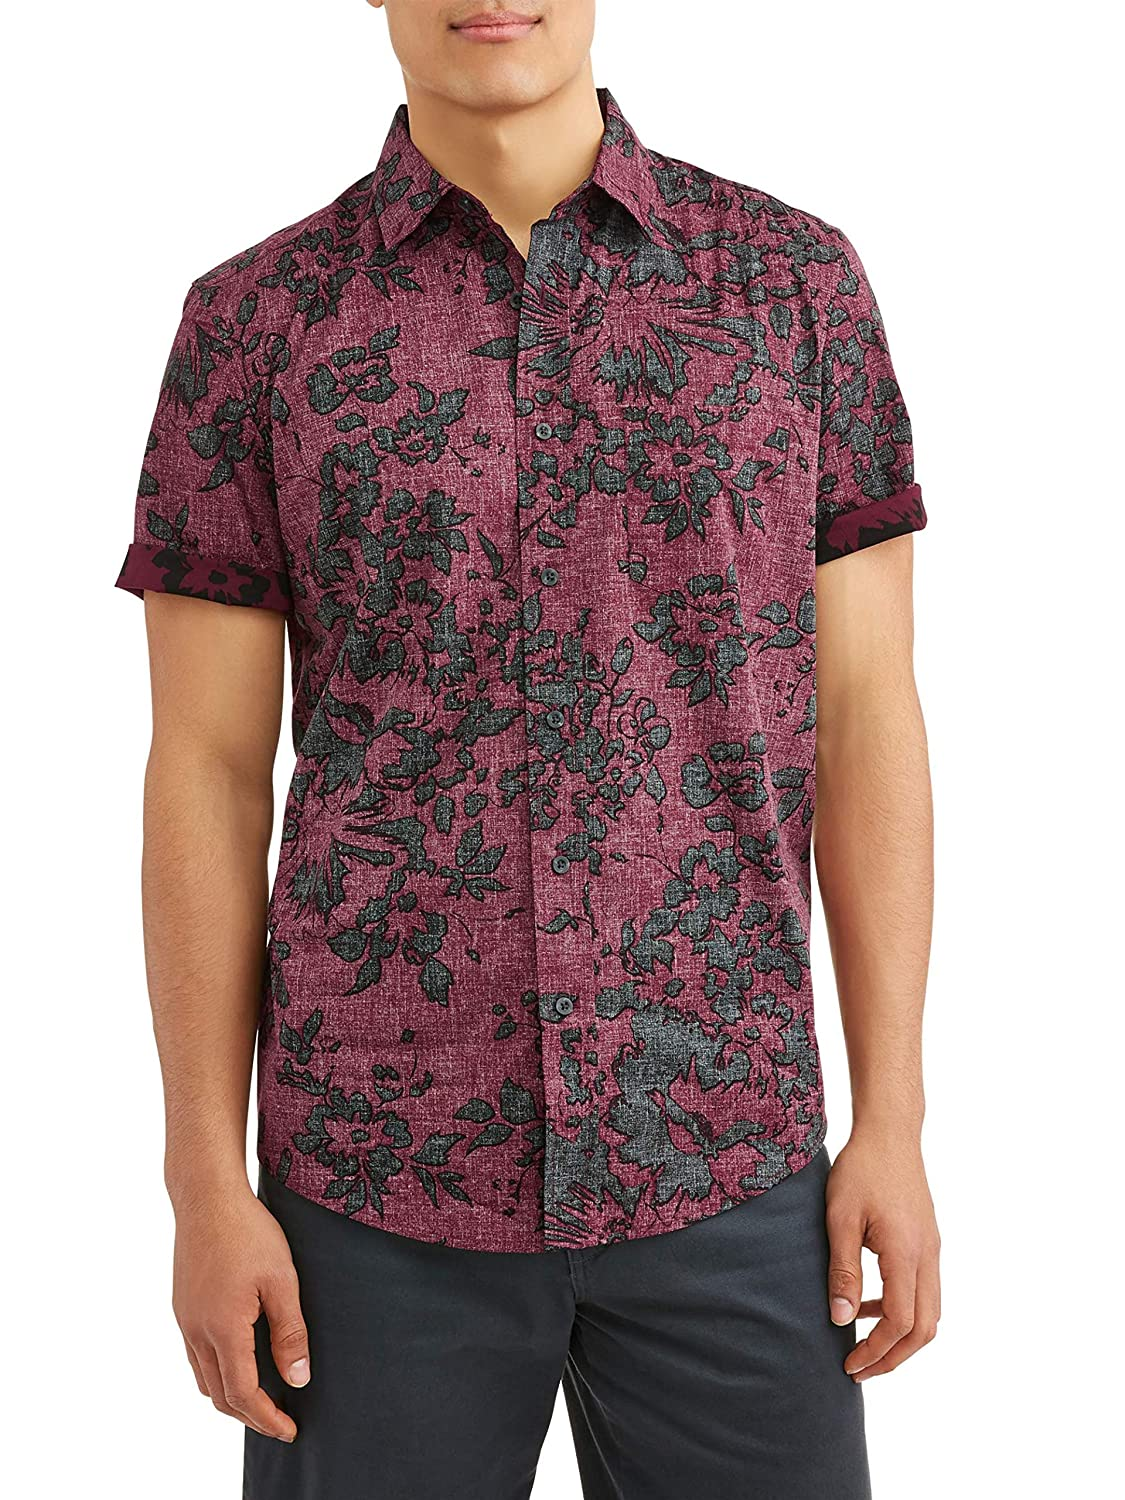 George Mens Short Sleeve Stretch Print Woven Shirt